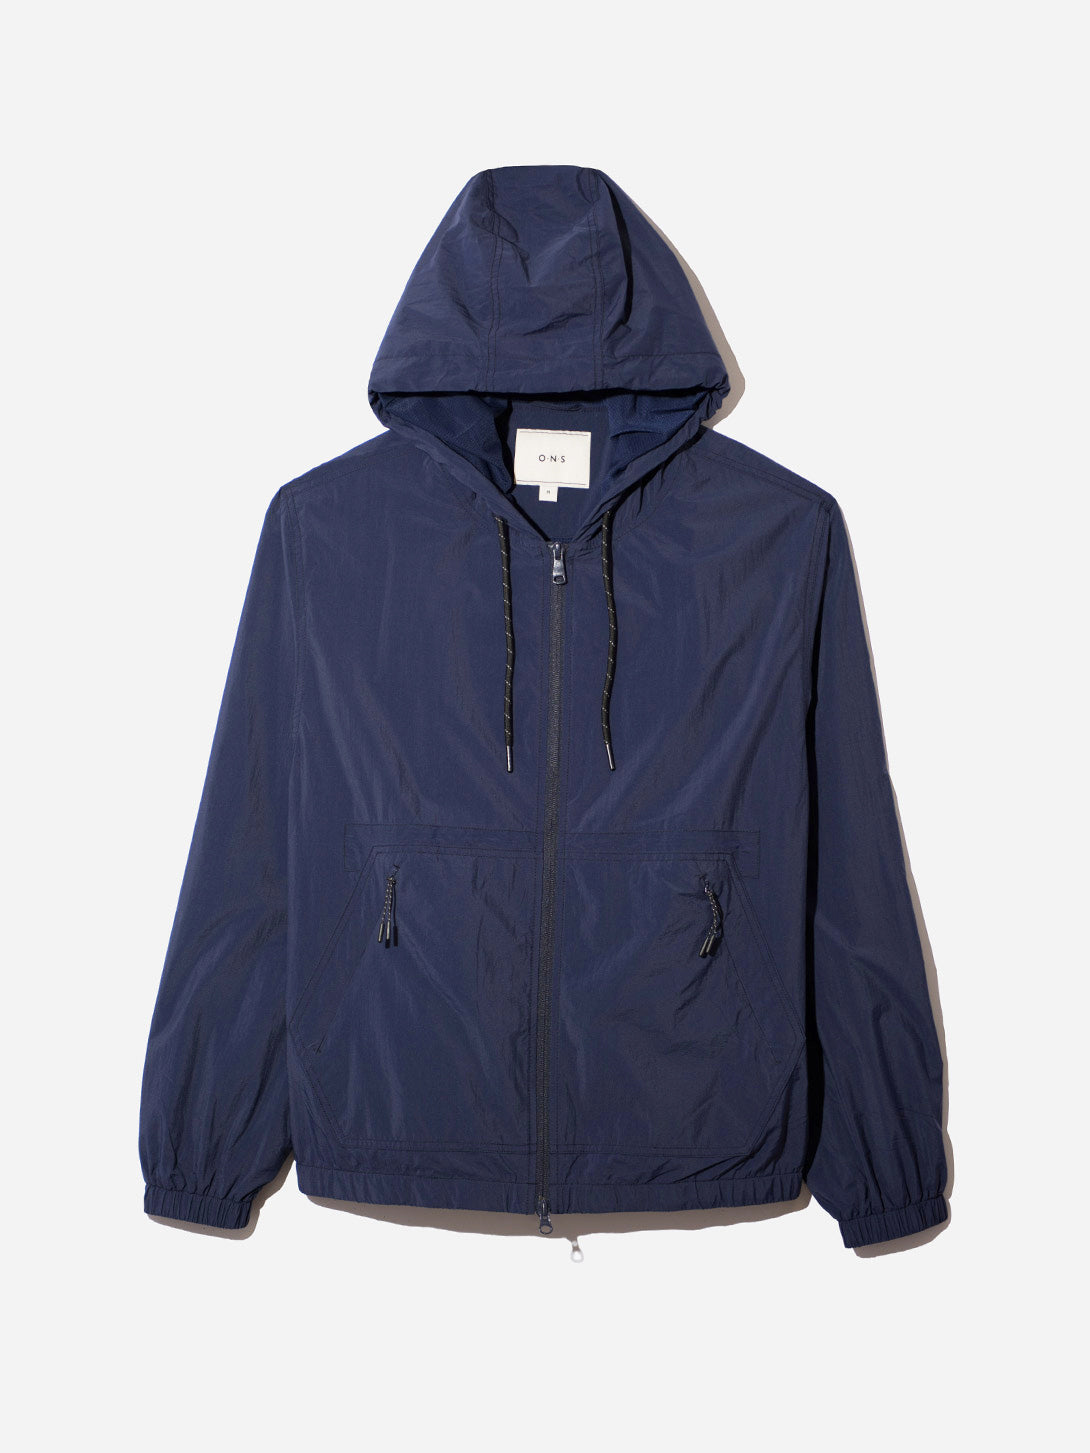 NAVY jackets for men lanier hooded jacket ons clothing